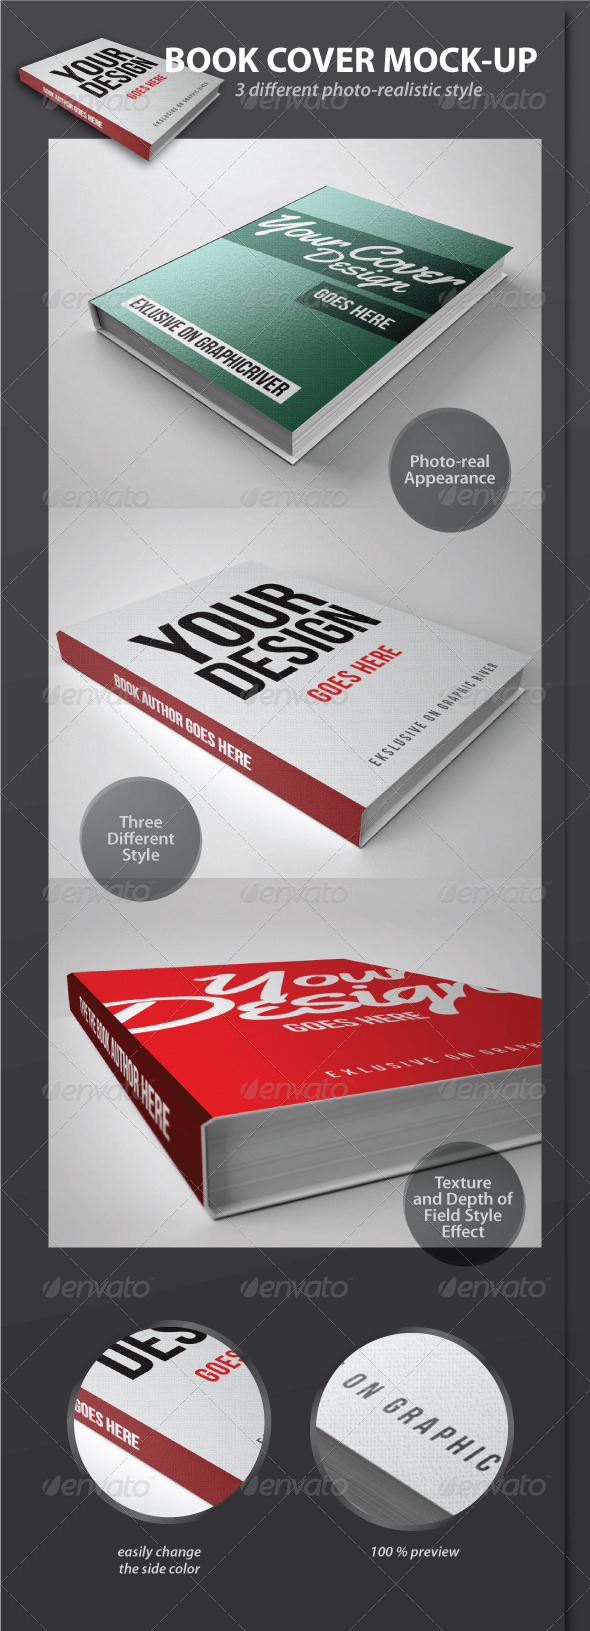 Book Cover Graphicriver : Book cover mock up graphicriver maydesk